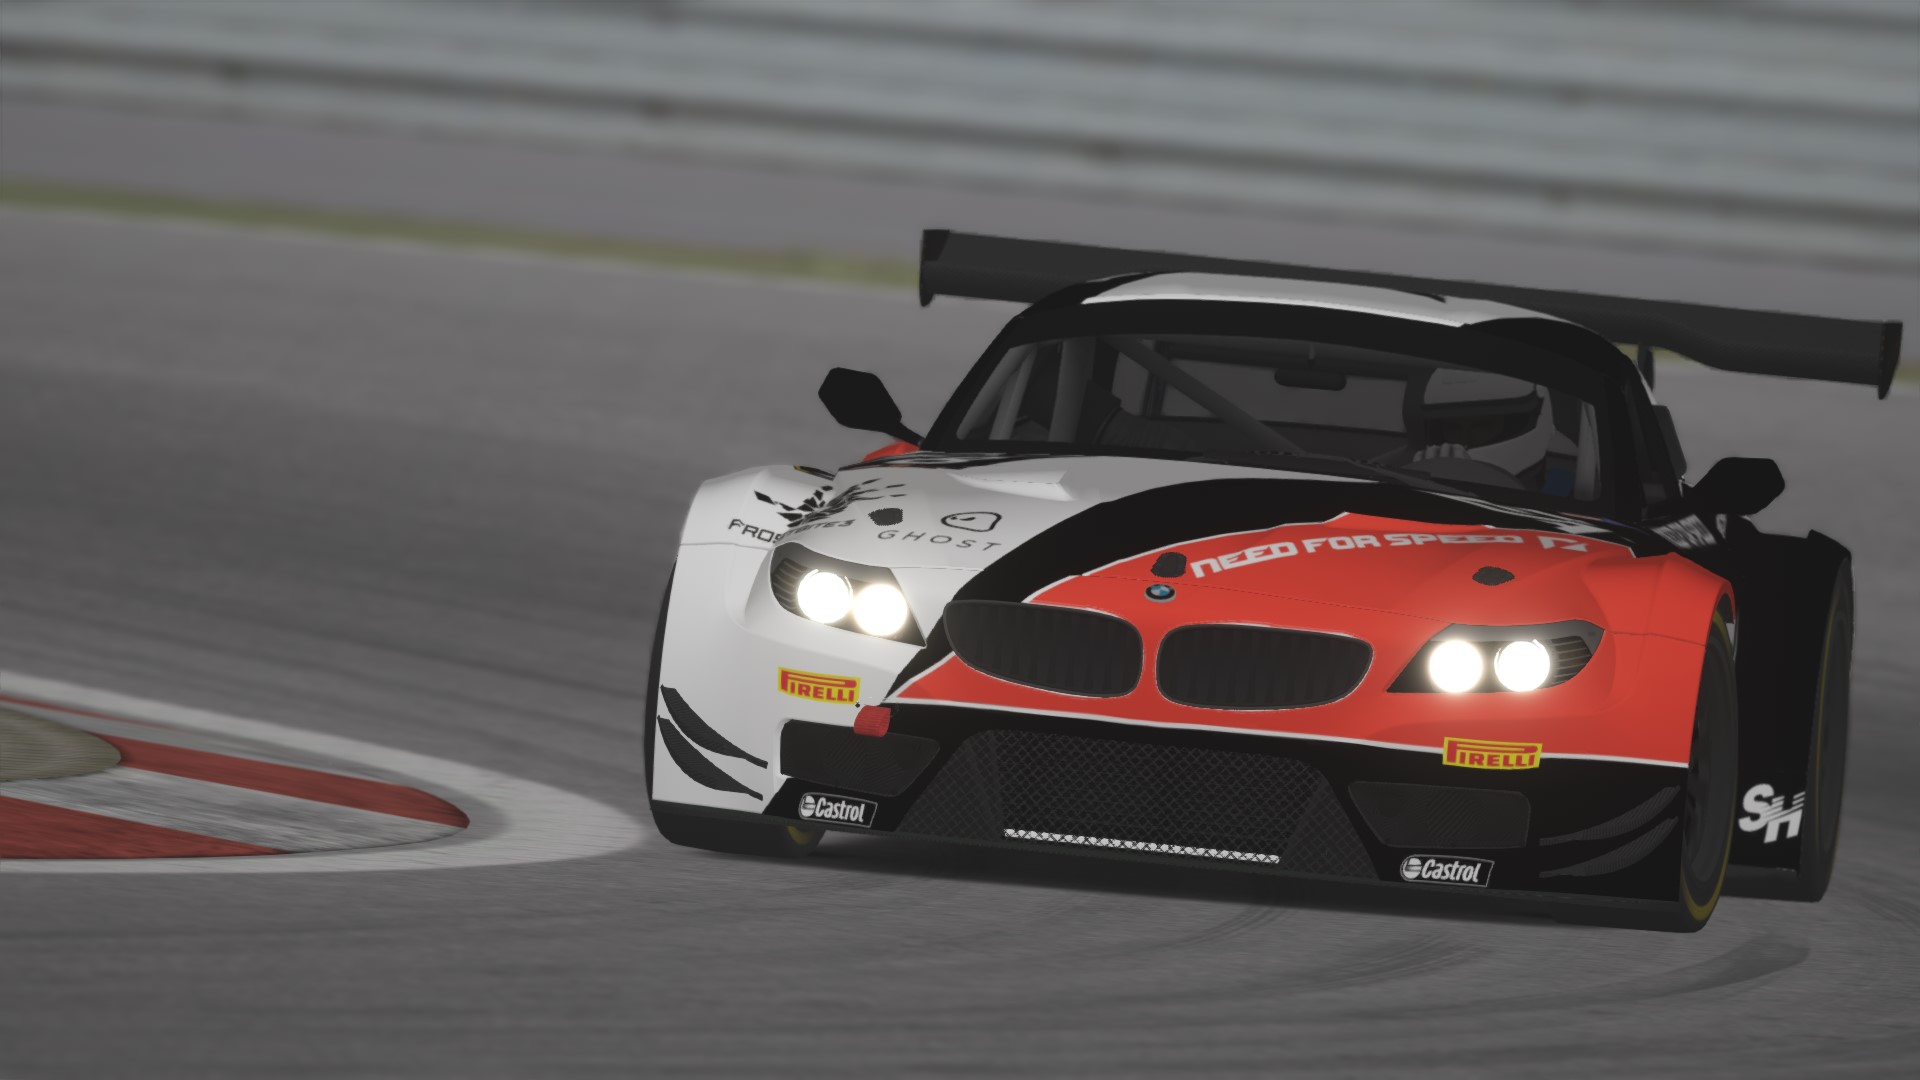 Screenshot_bmw_z4_gt3_nurburgring_19-12-115-0-47-29.jpg